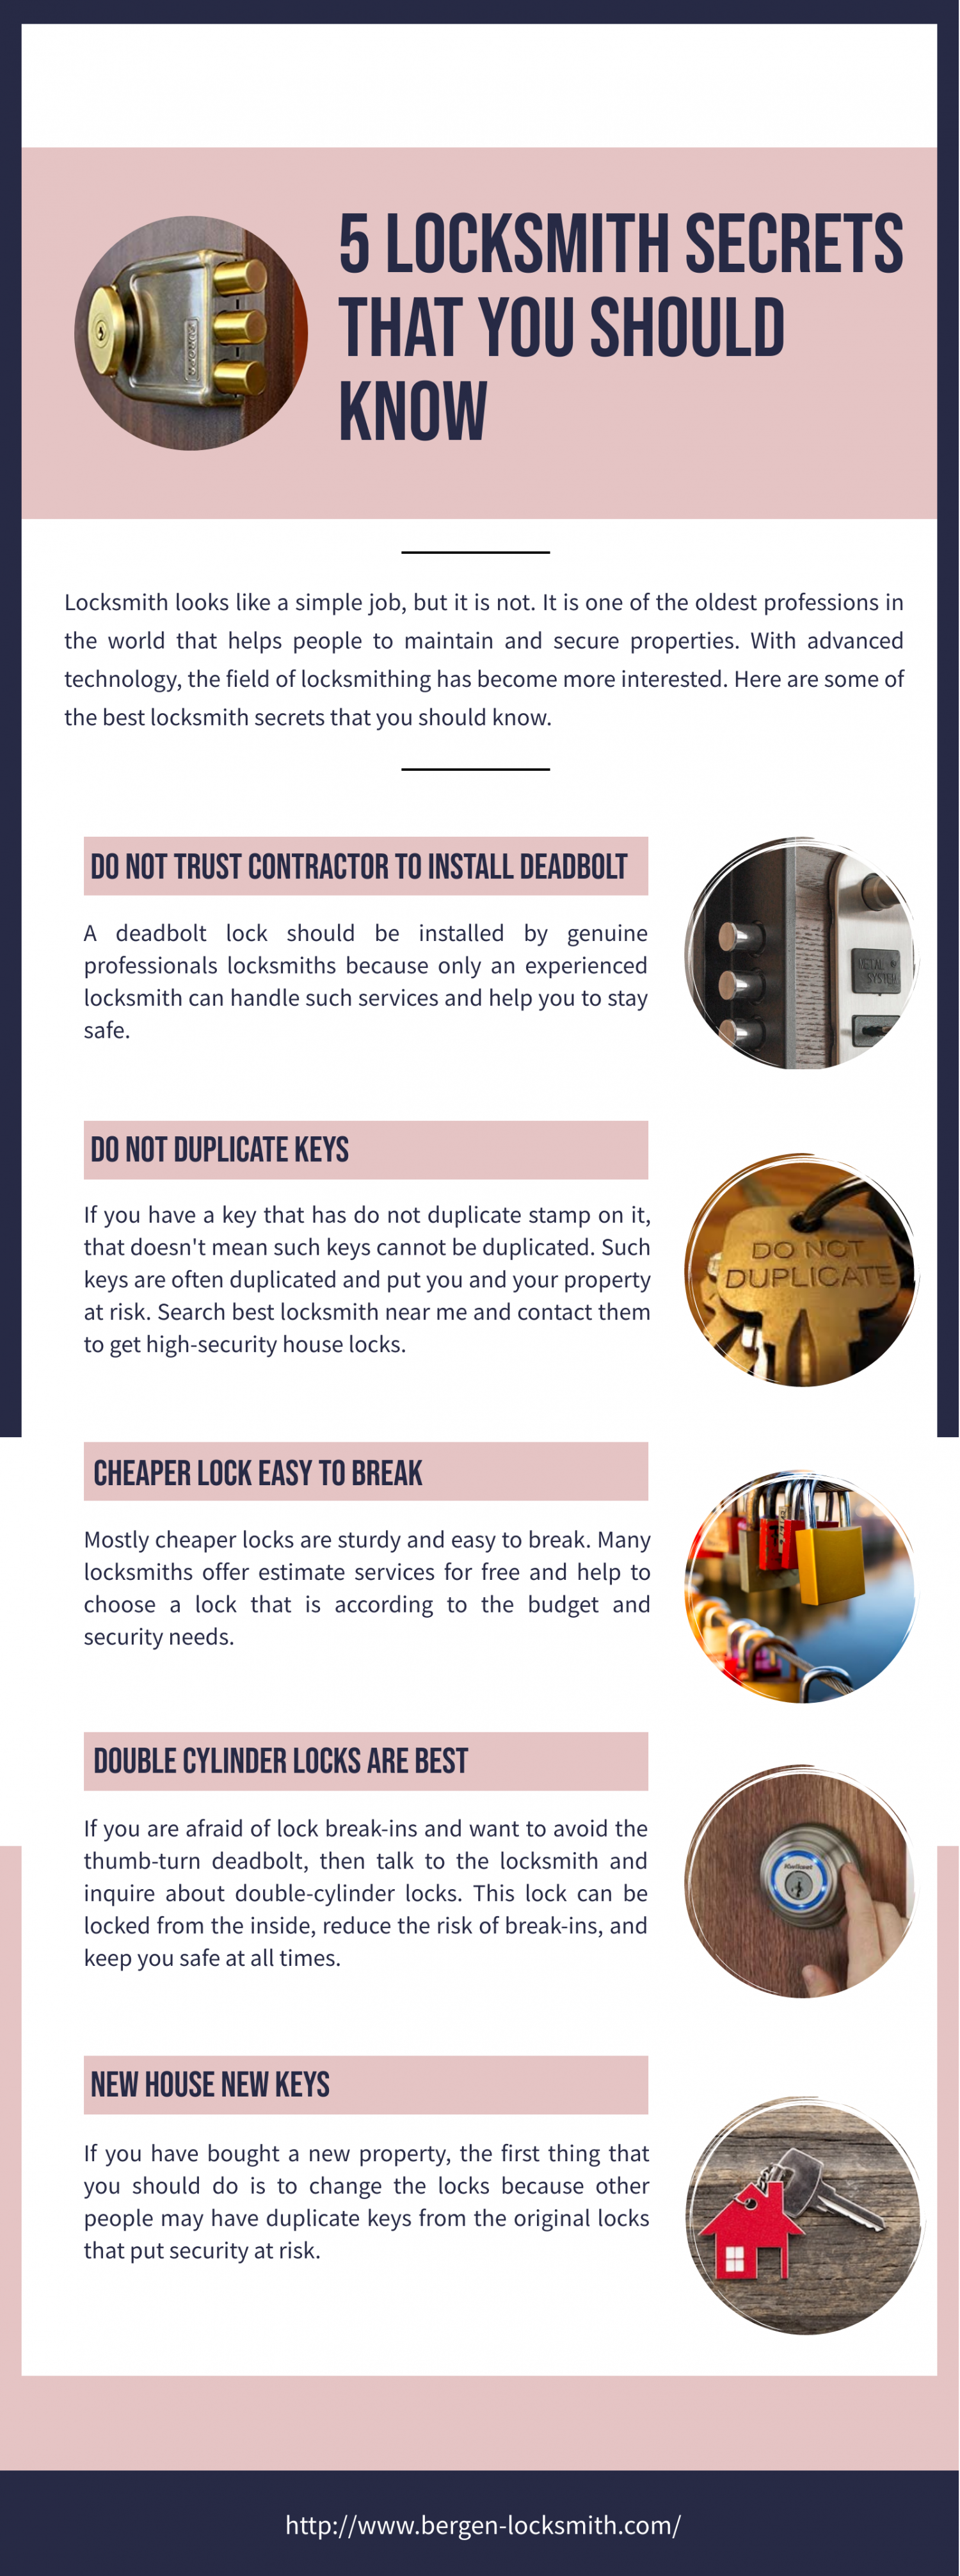 5 Locksmith Secrets That You Should Know Infographic